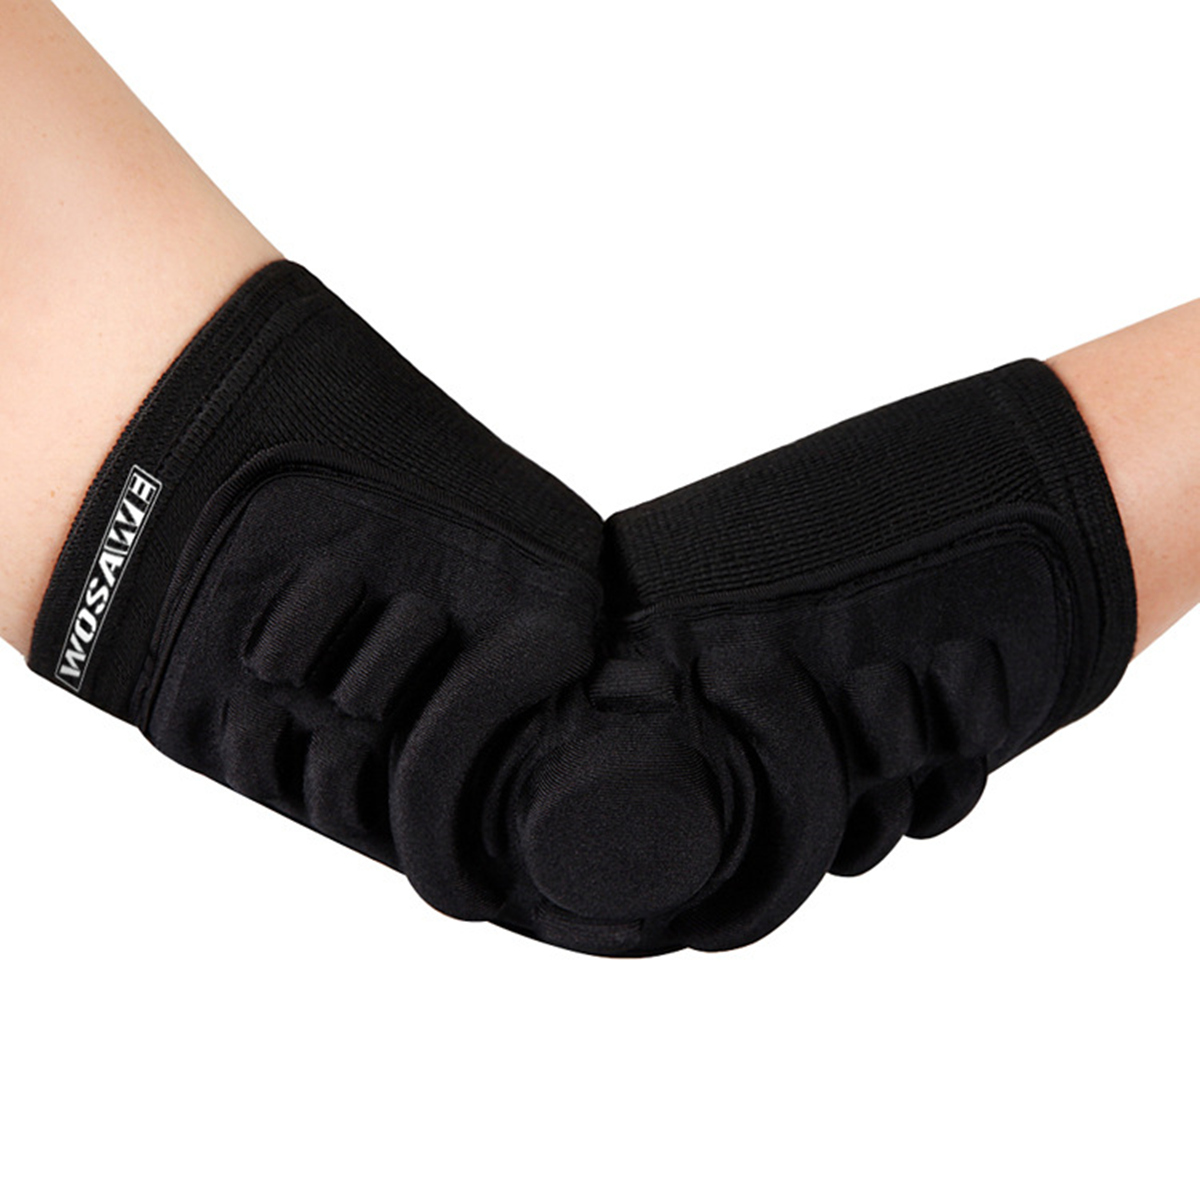 Safety Guard Elbow Knee Support Pad Protector for Cycling Baseball Outdoor Sport